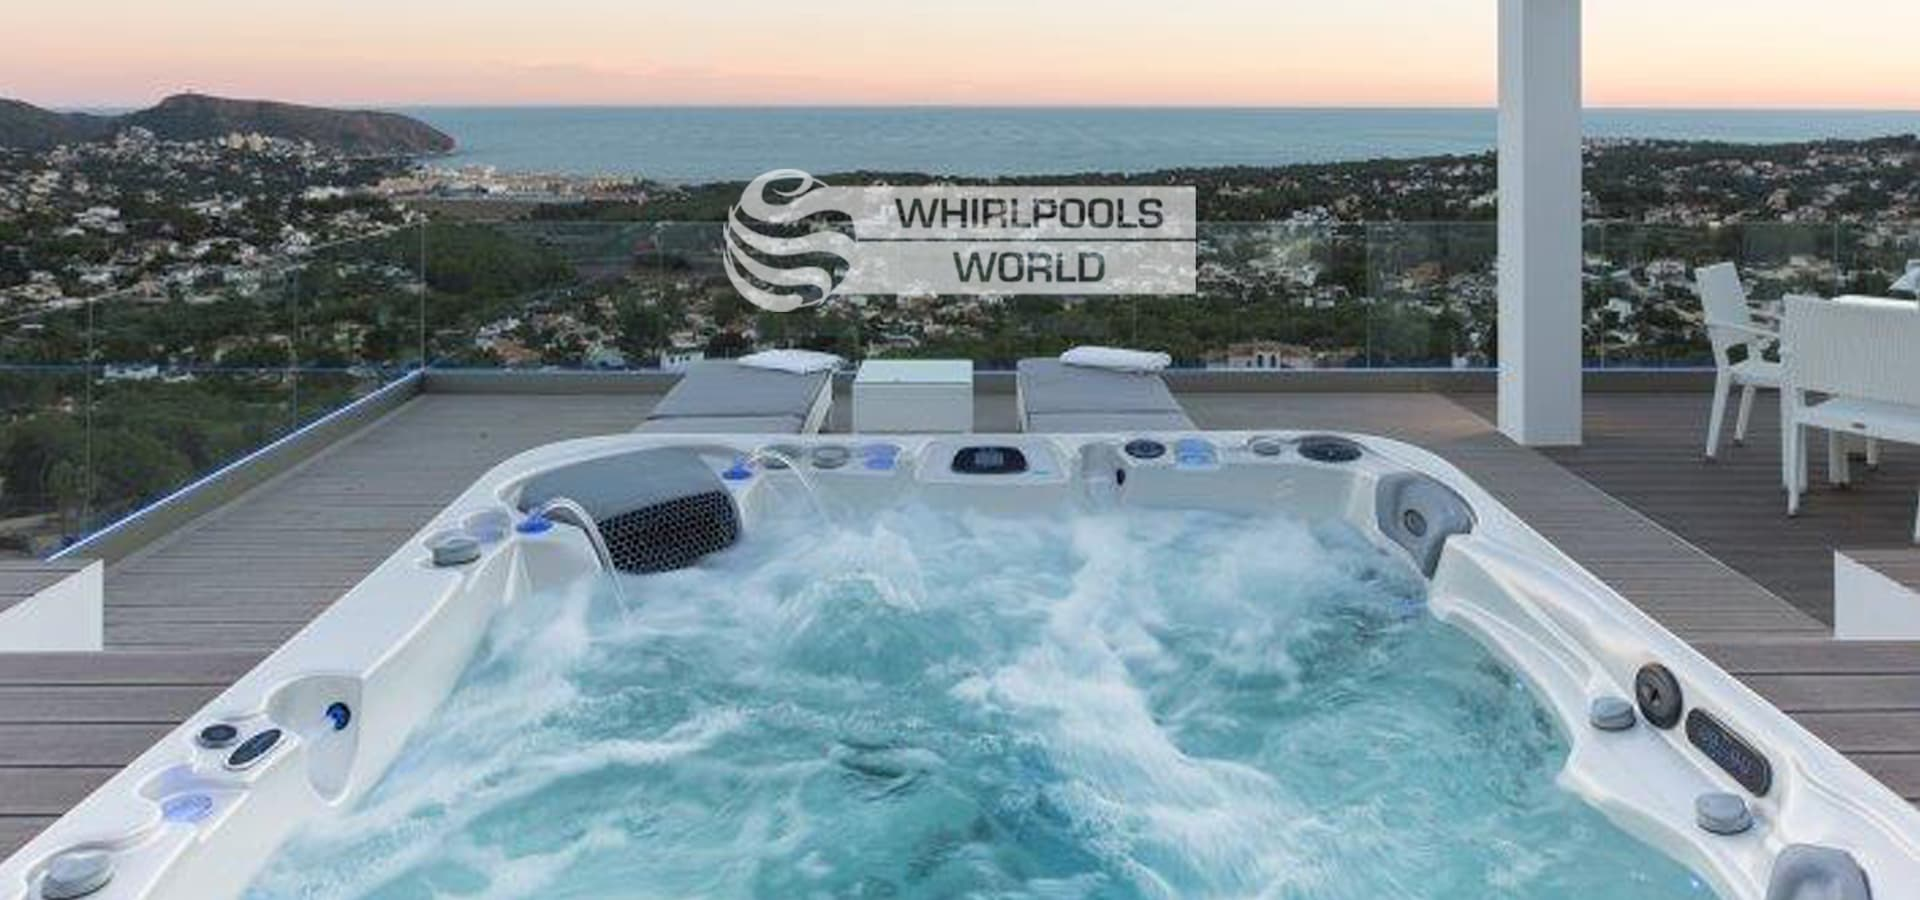 Whirlpools World